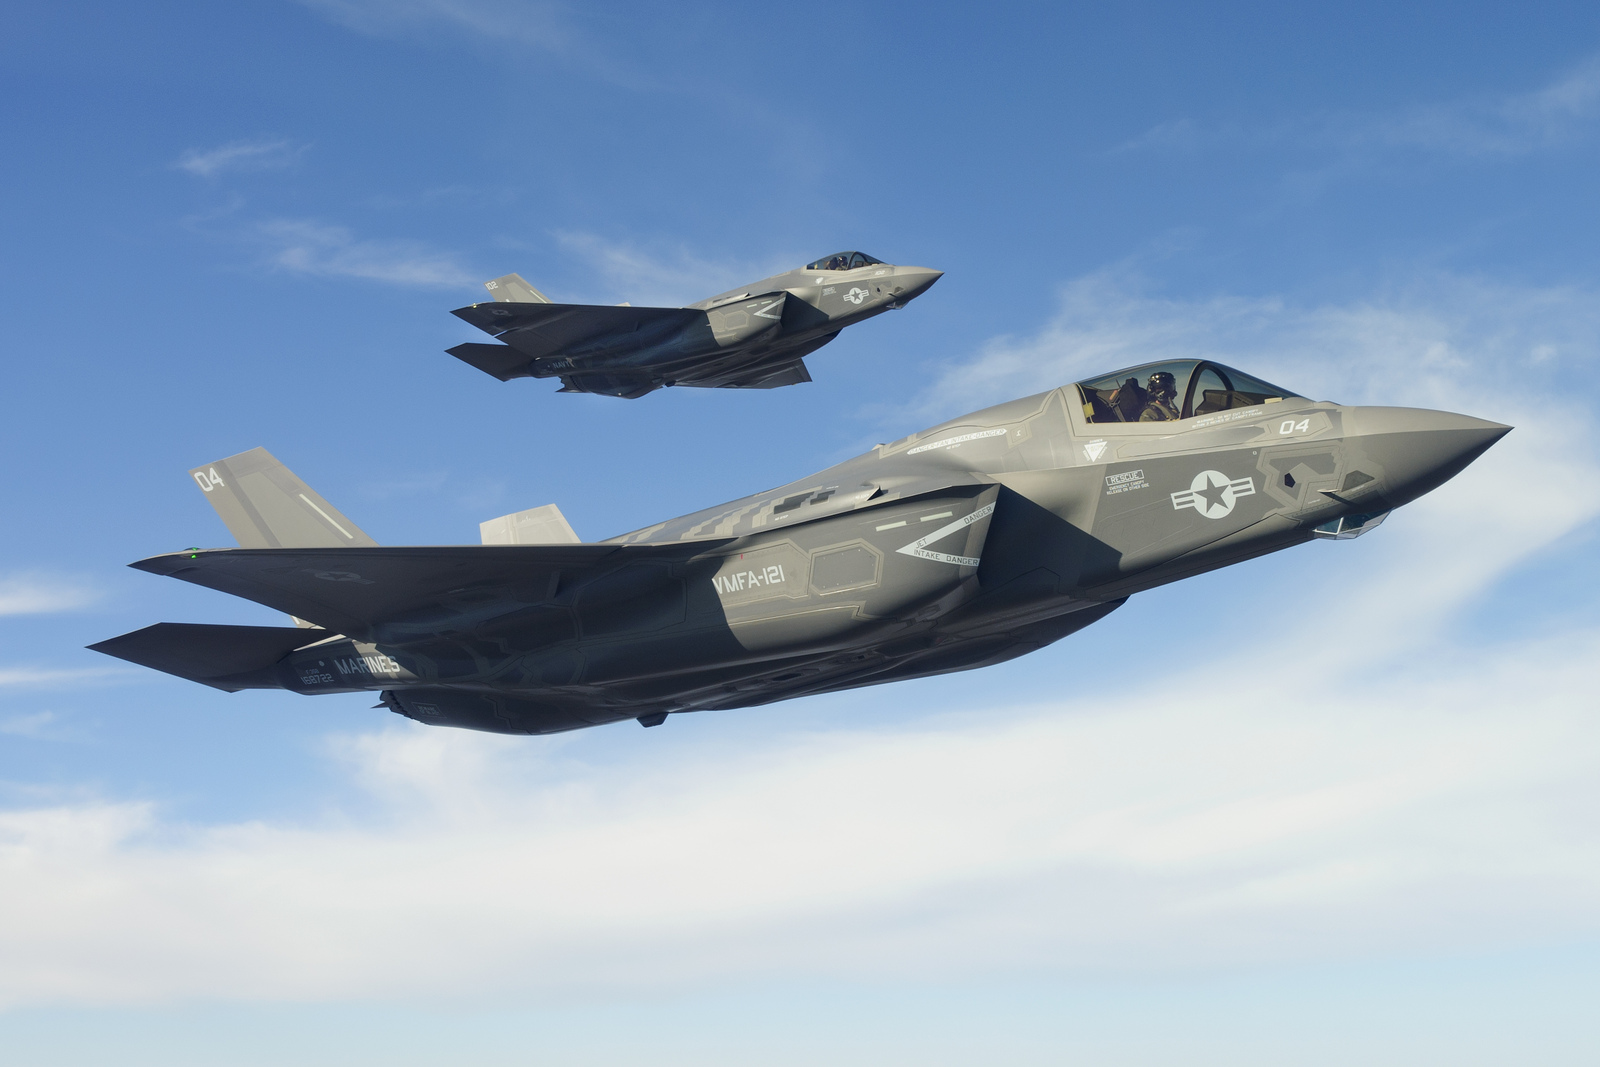 F 35 Stealth Fighter Jets F-35B and C